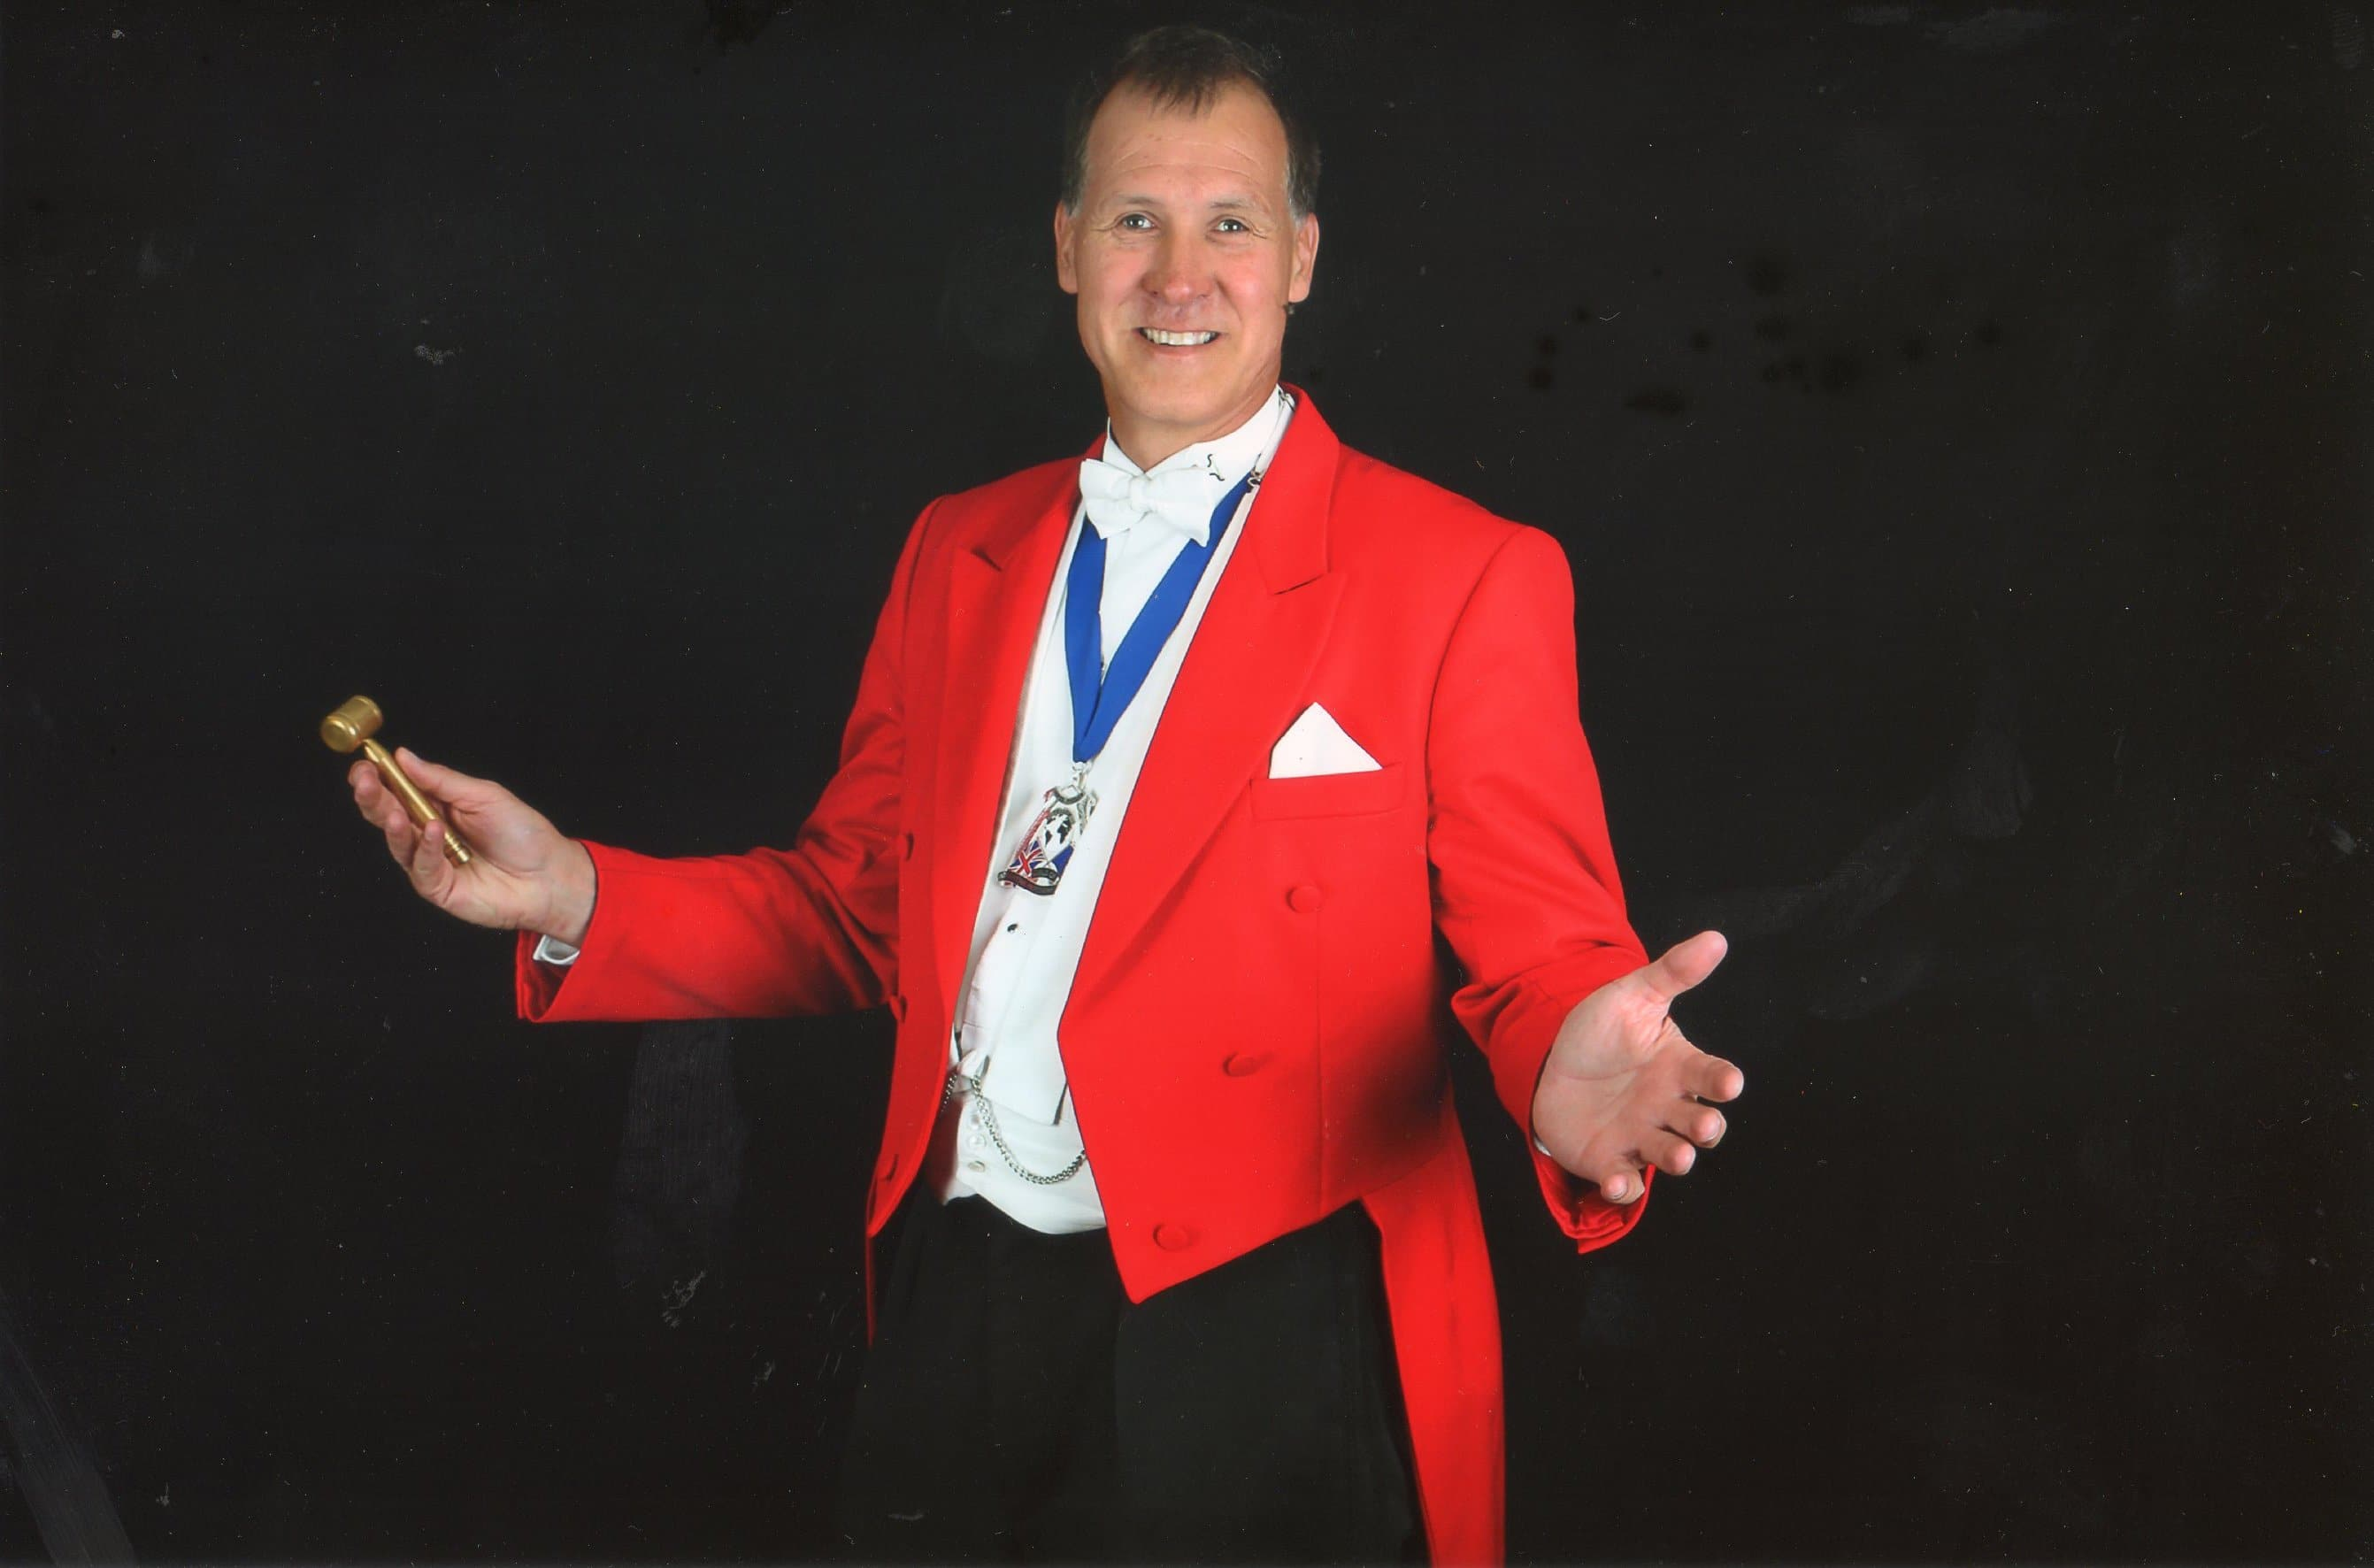 Toastmaster and Master of Ceremonies London - James Hasler